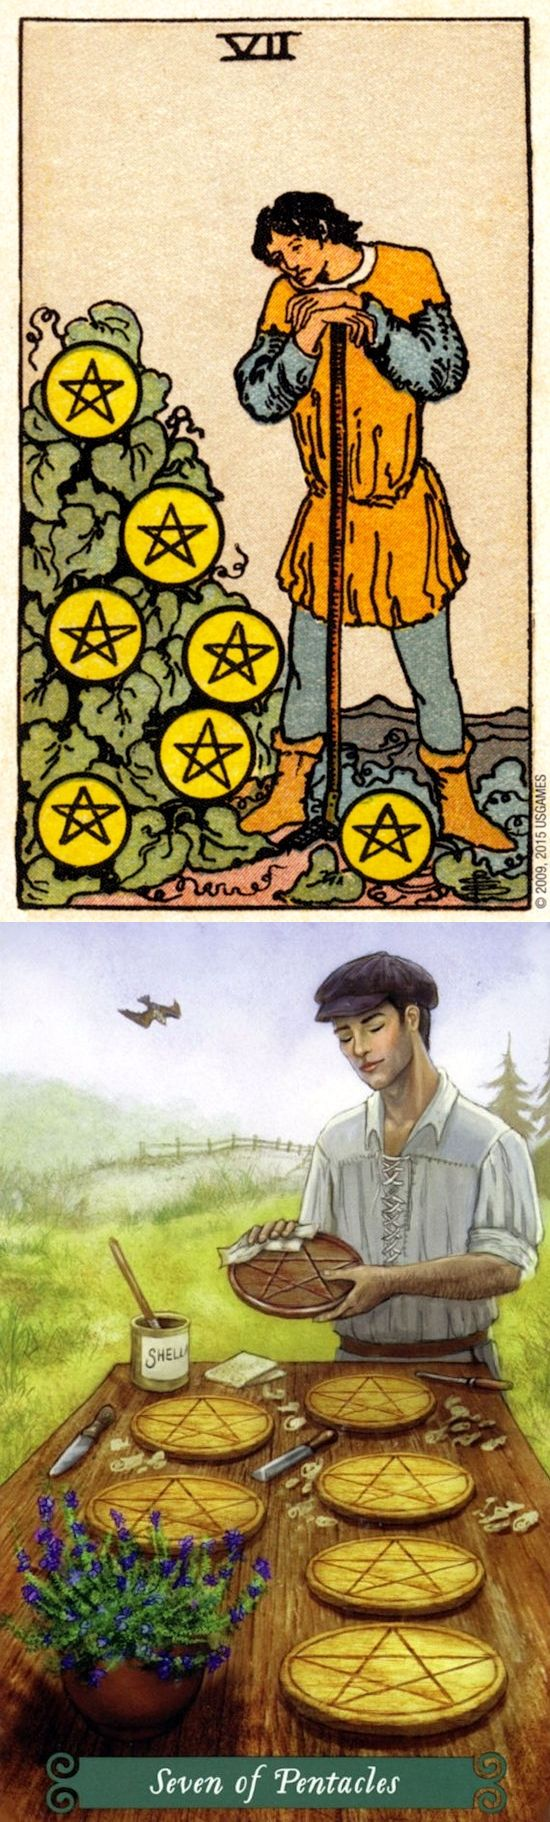 Seven of Pentacles: perseverance and work without adequate rewards (reverse). Rider Centenial Tarot deck and Green Witch Tarot deck: best free tarot reading online, free dark tarot and free tarot reading uk. New ritual sacrifice and tarot spreads layout.